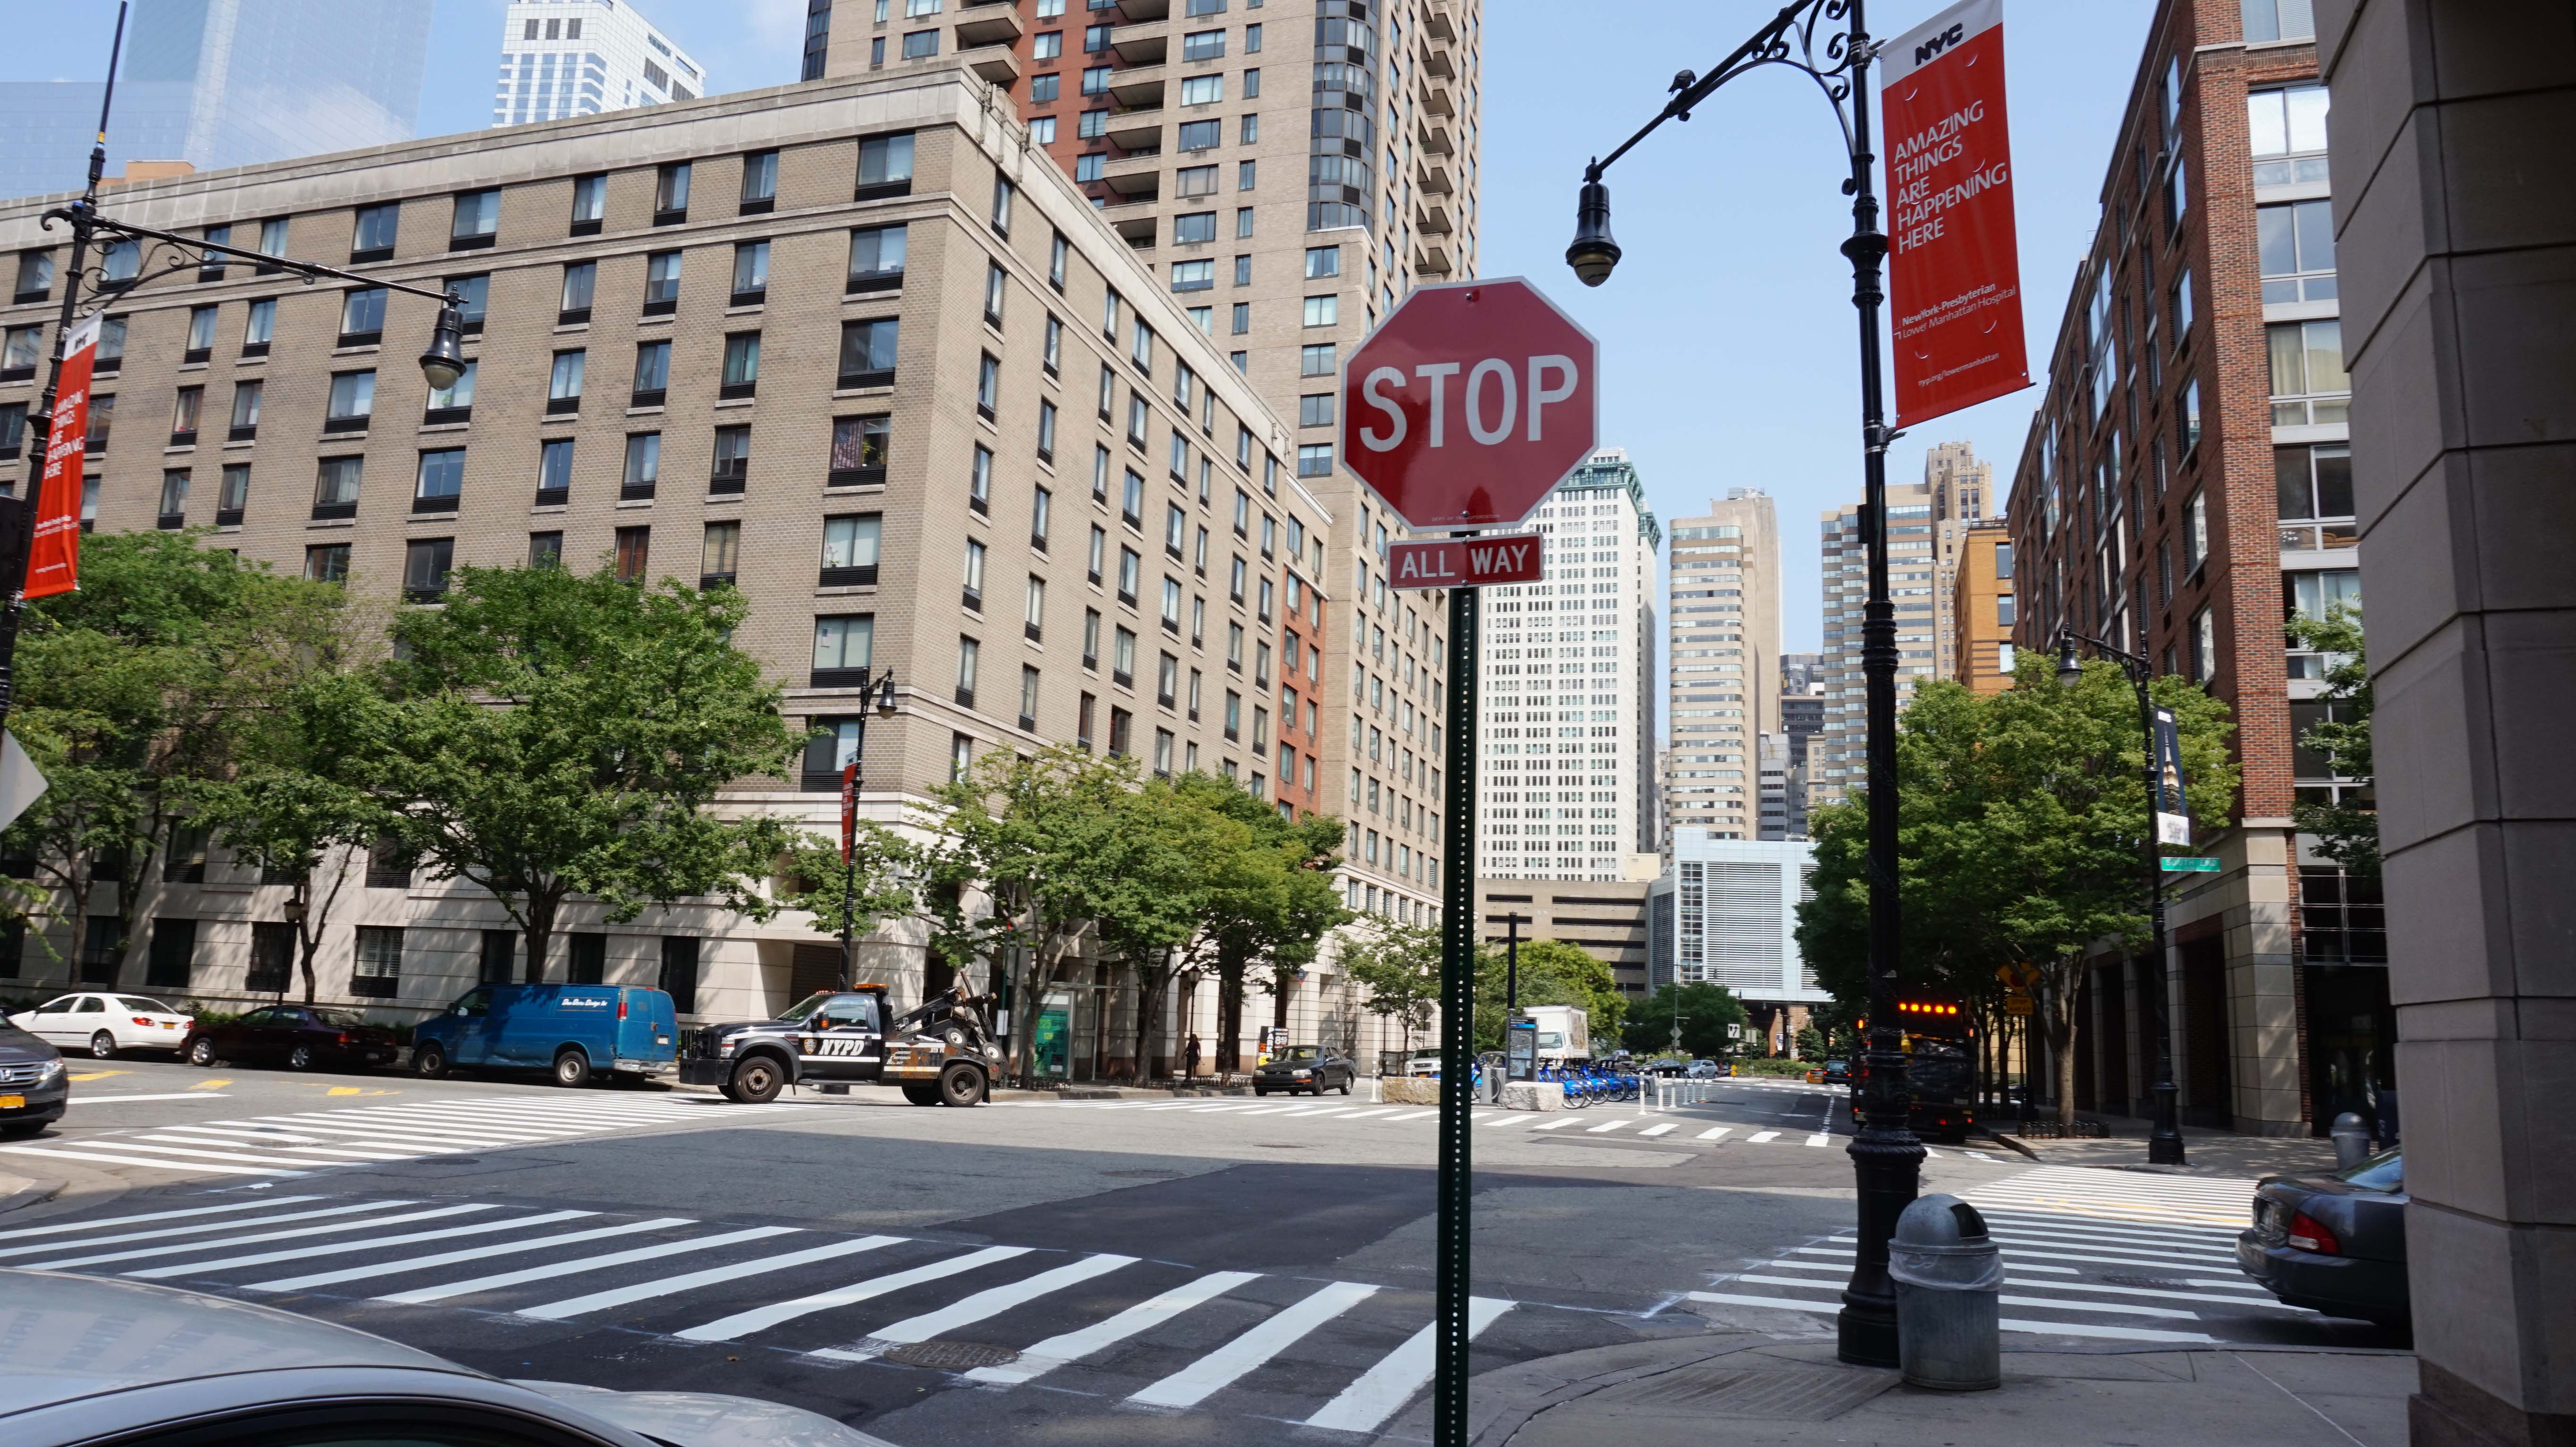 Stop sign at the southwest corner of West Thames and South End in New York City. Photo taken on July 22, 2014.